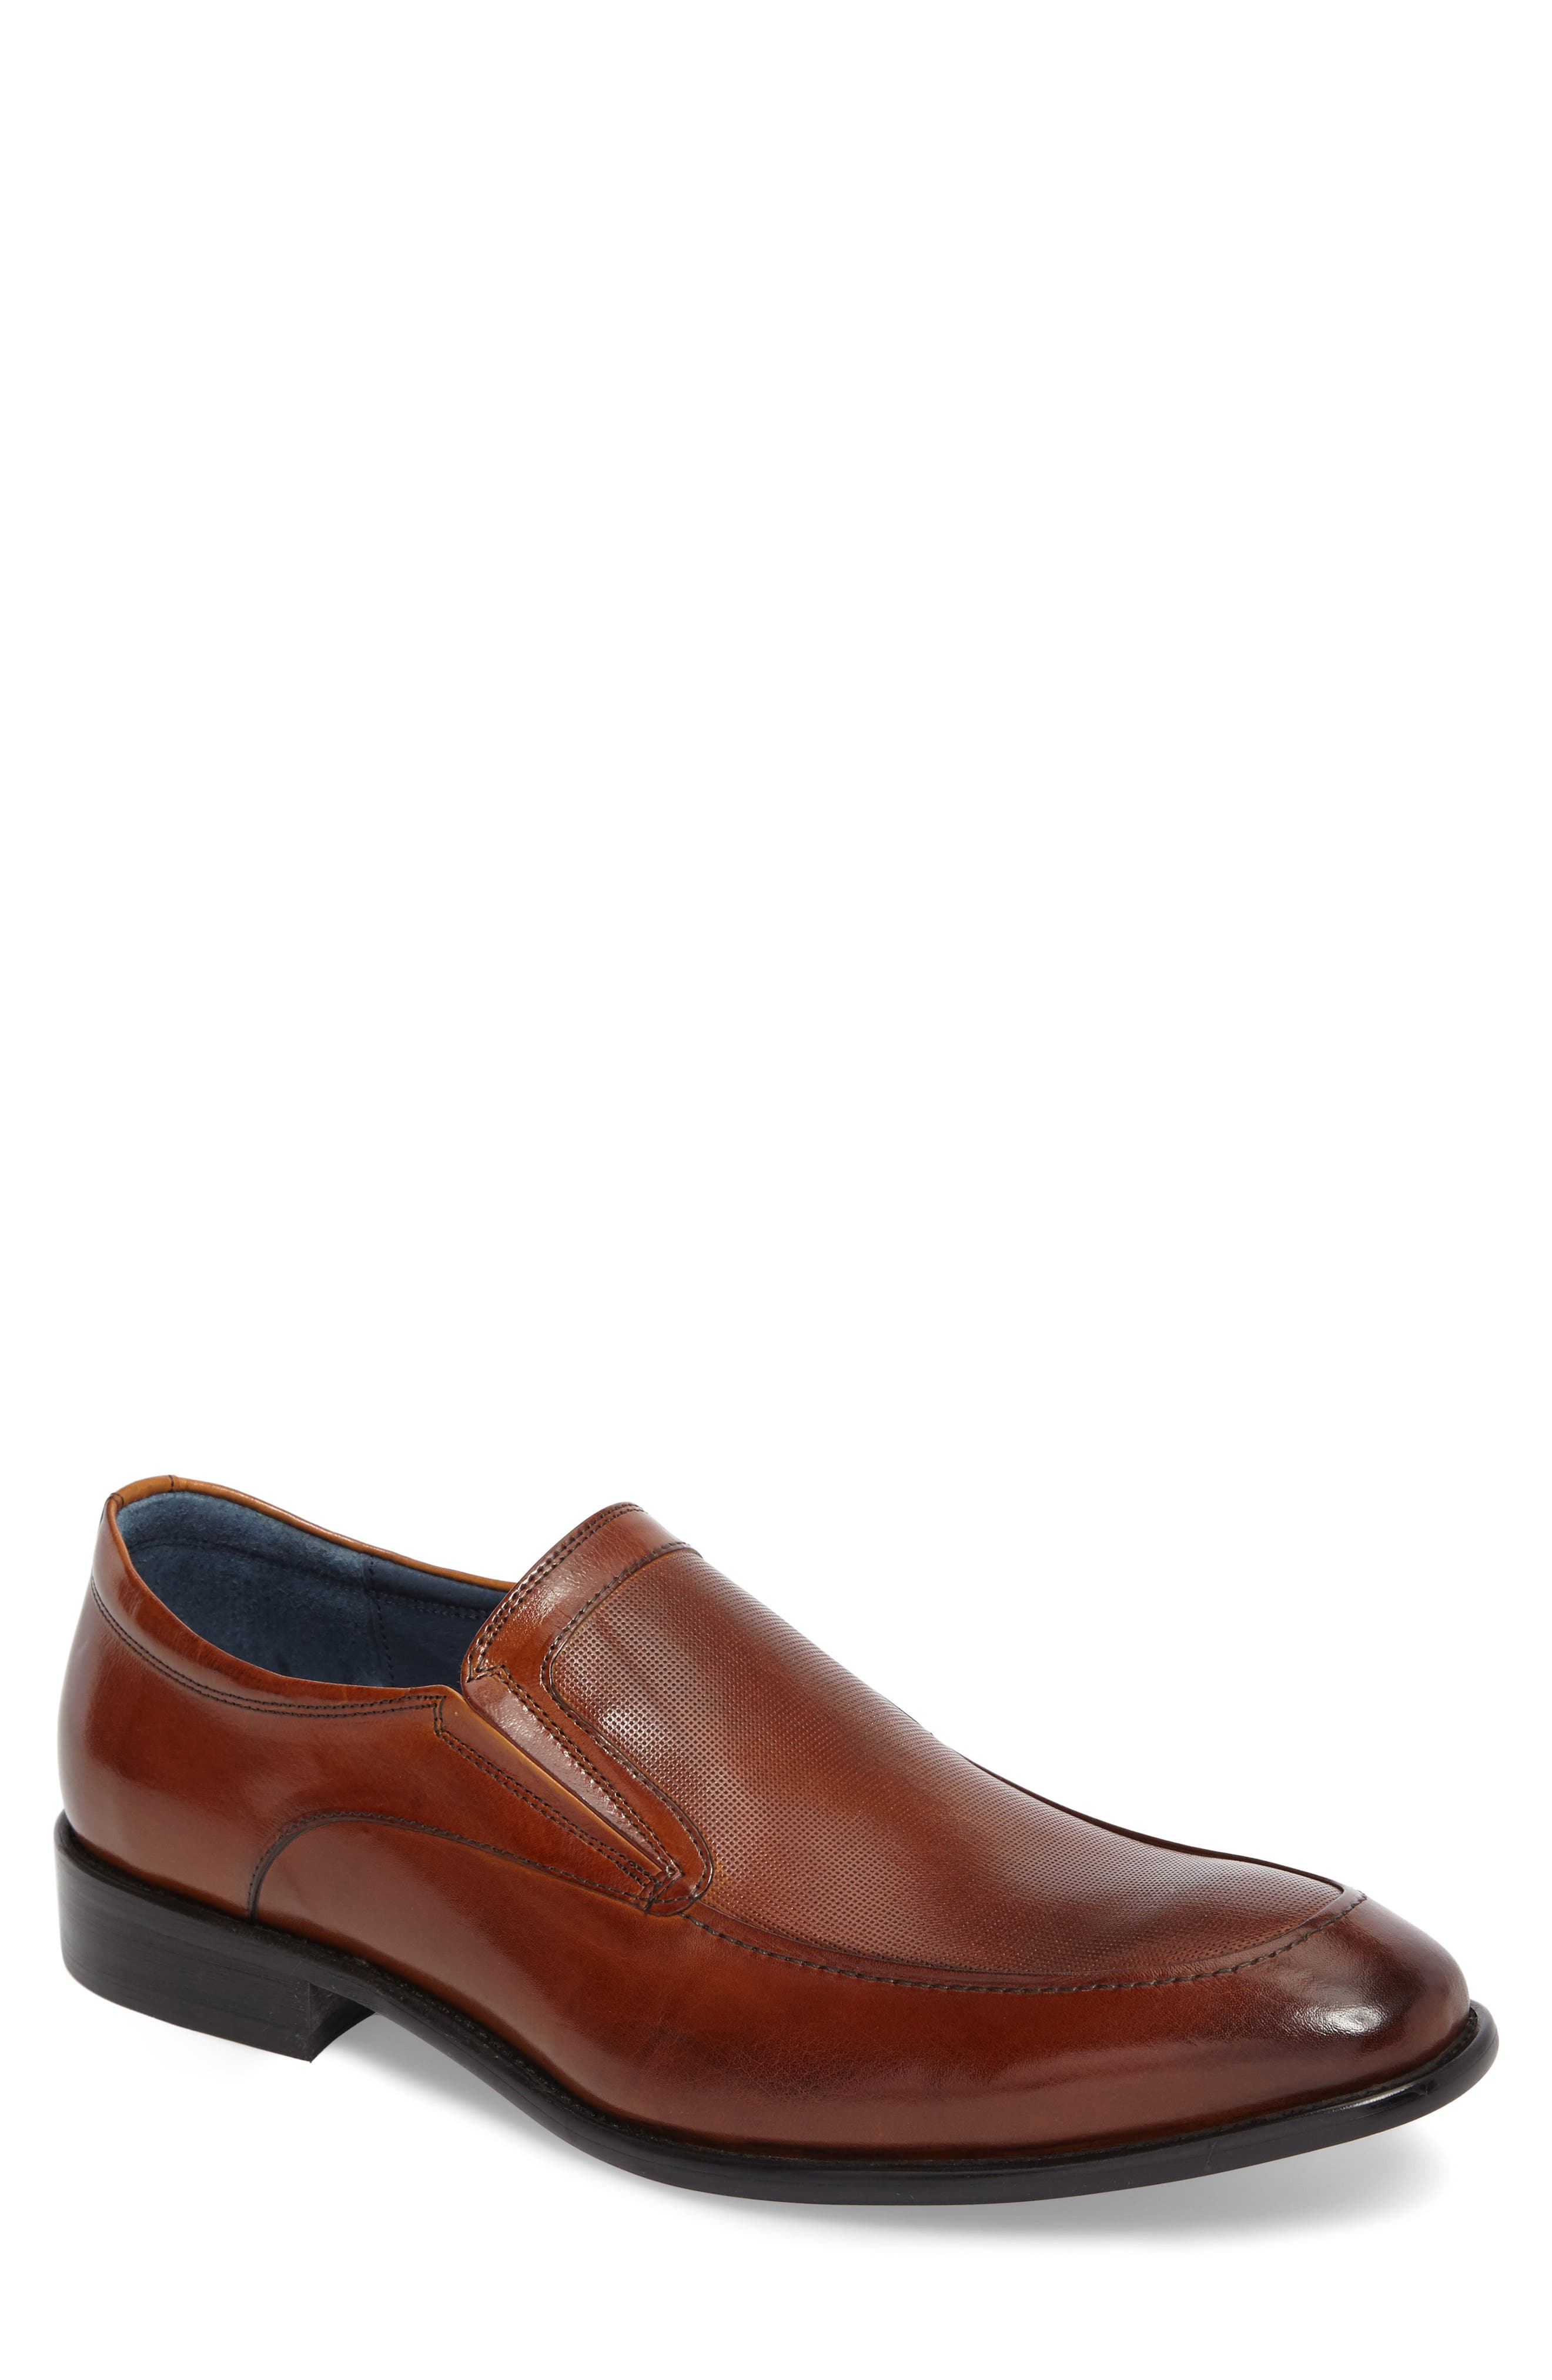 Jace Embossed Apron Toe Loafer,                         Main,                         color, Cognac Leather